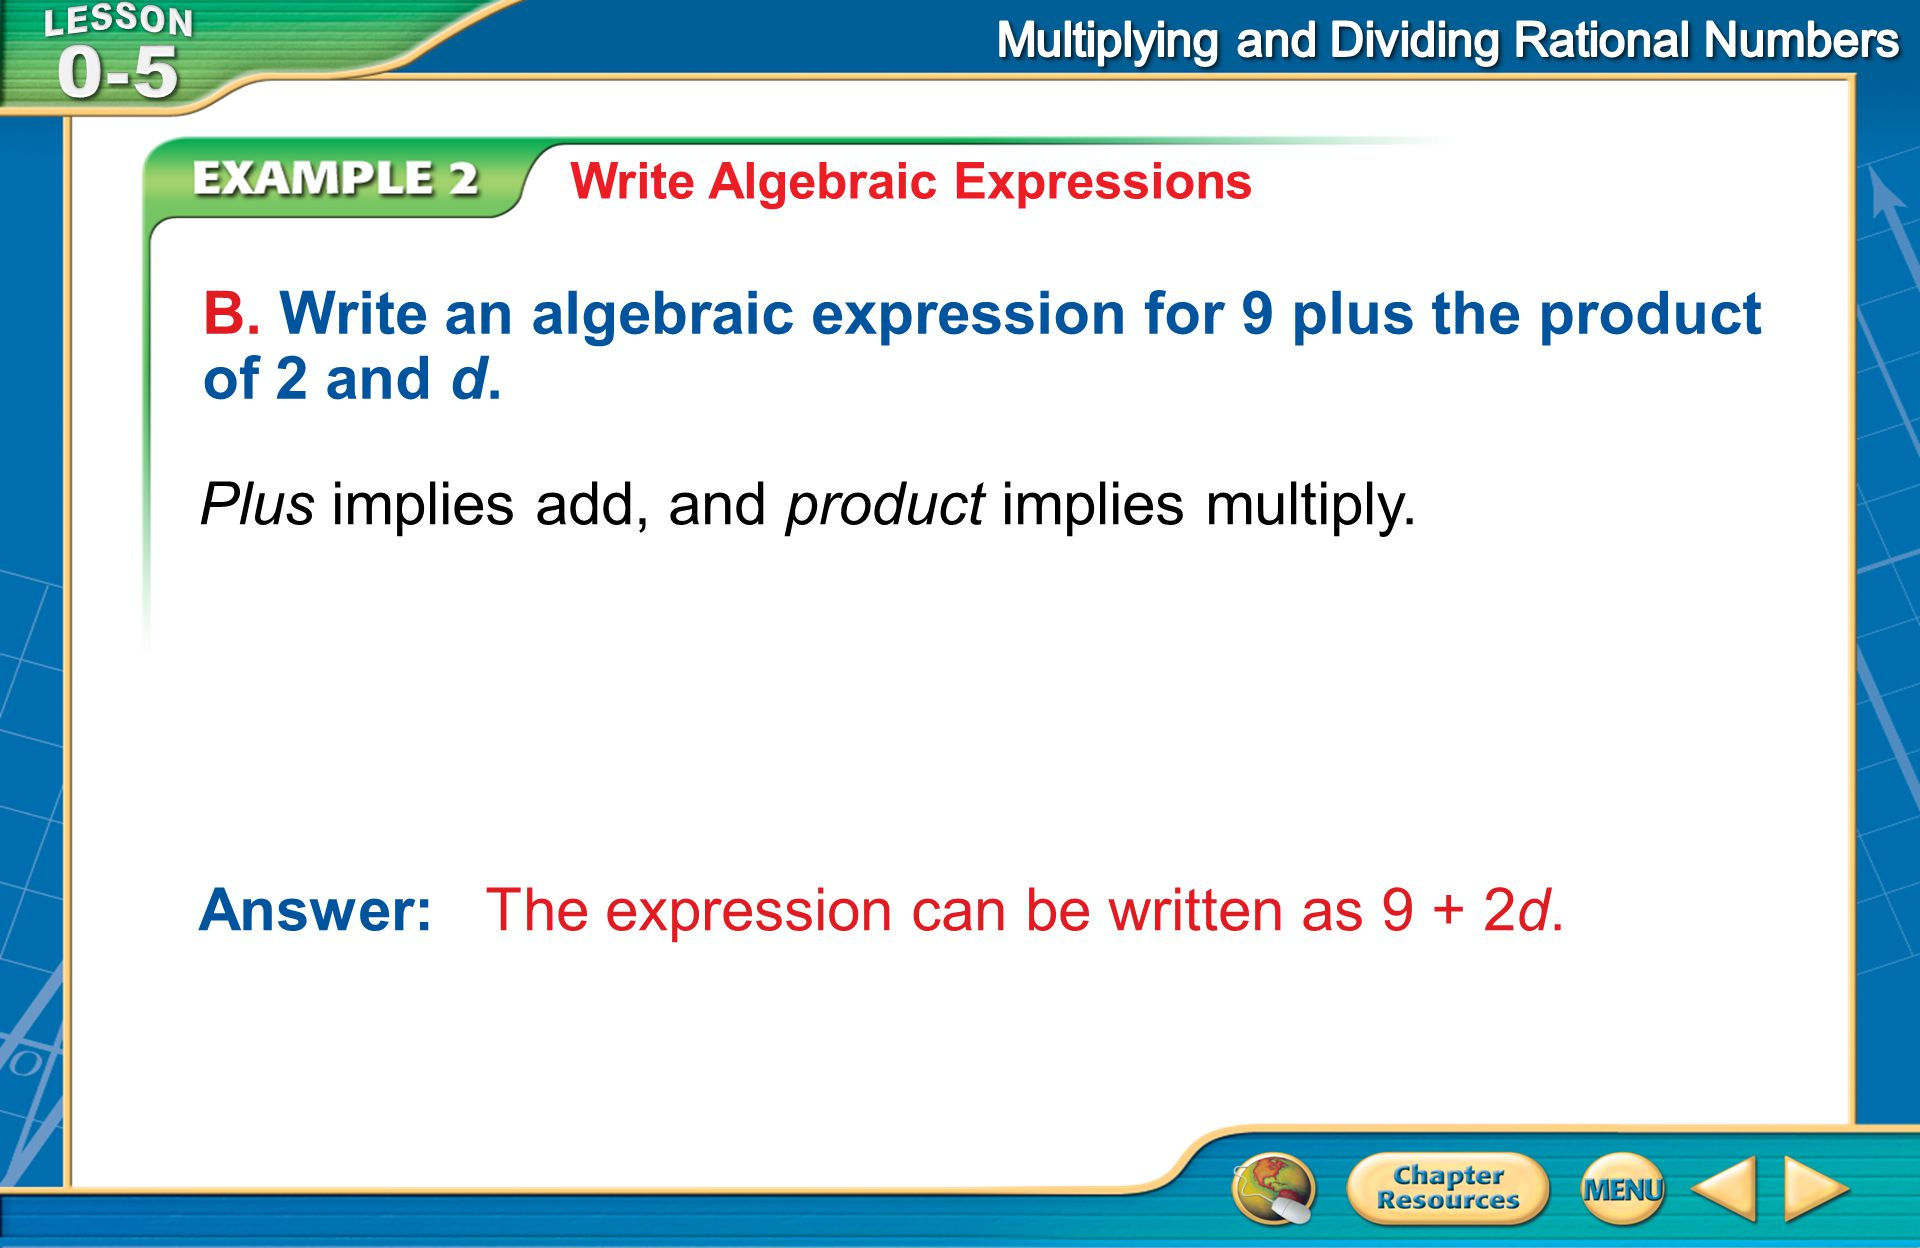 B. Write an algebraic expression for 9 plus the product of 2 and d.